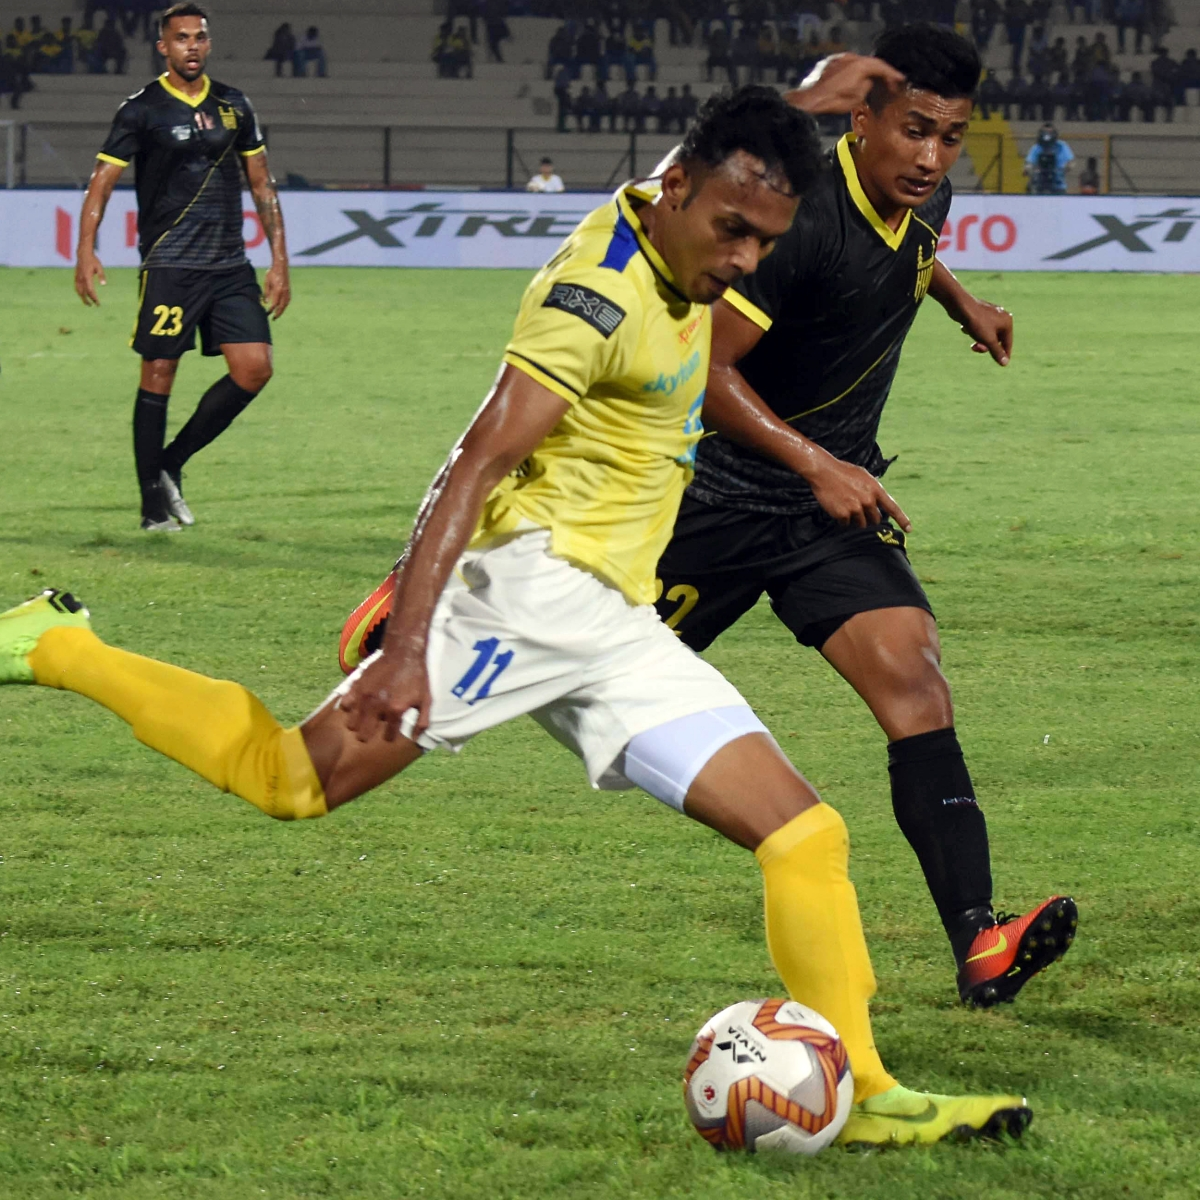 Hyderabad take on NorthEast after their win over Kerala Blasters